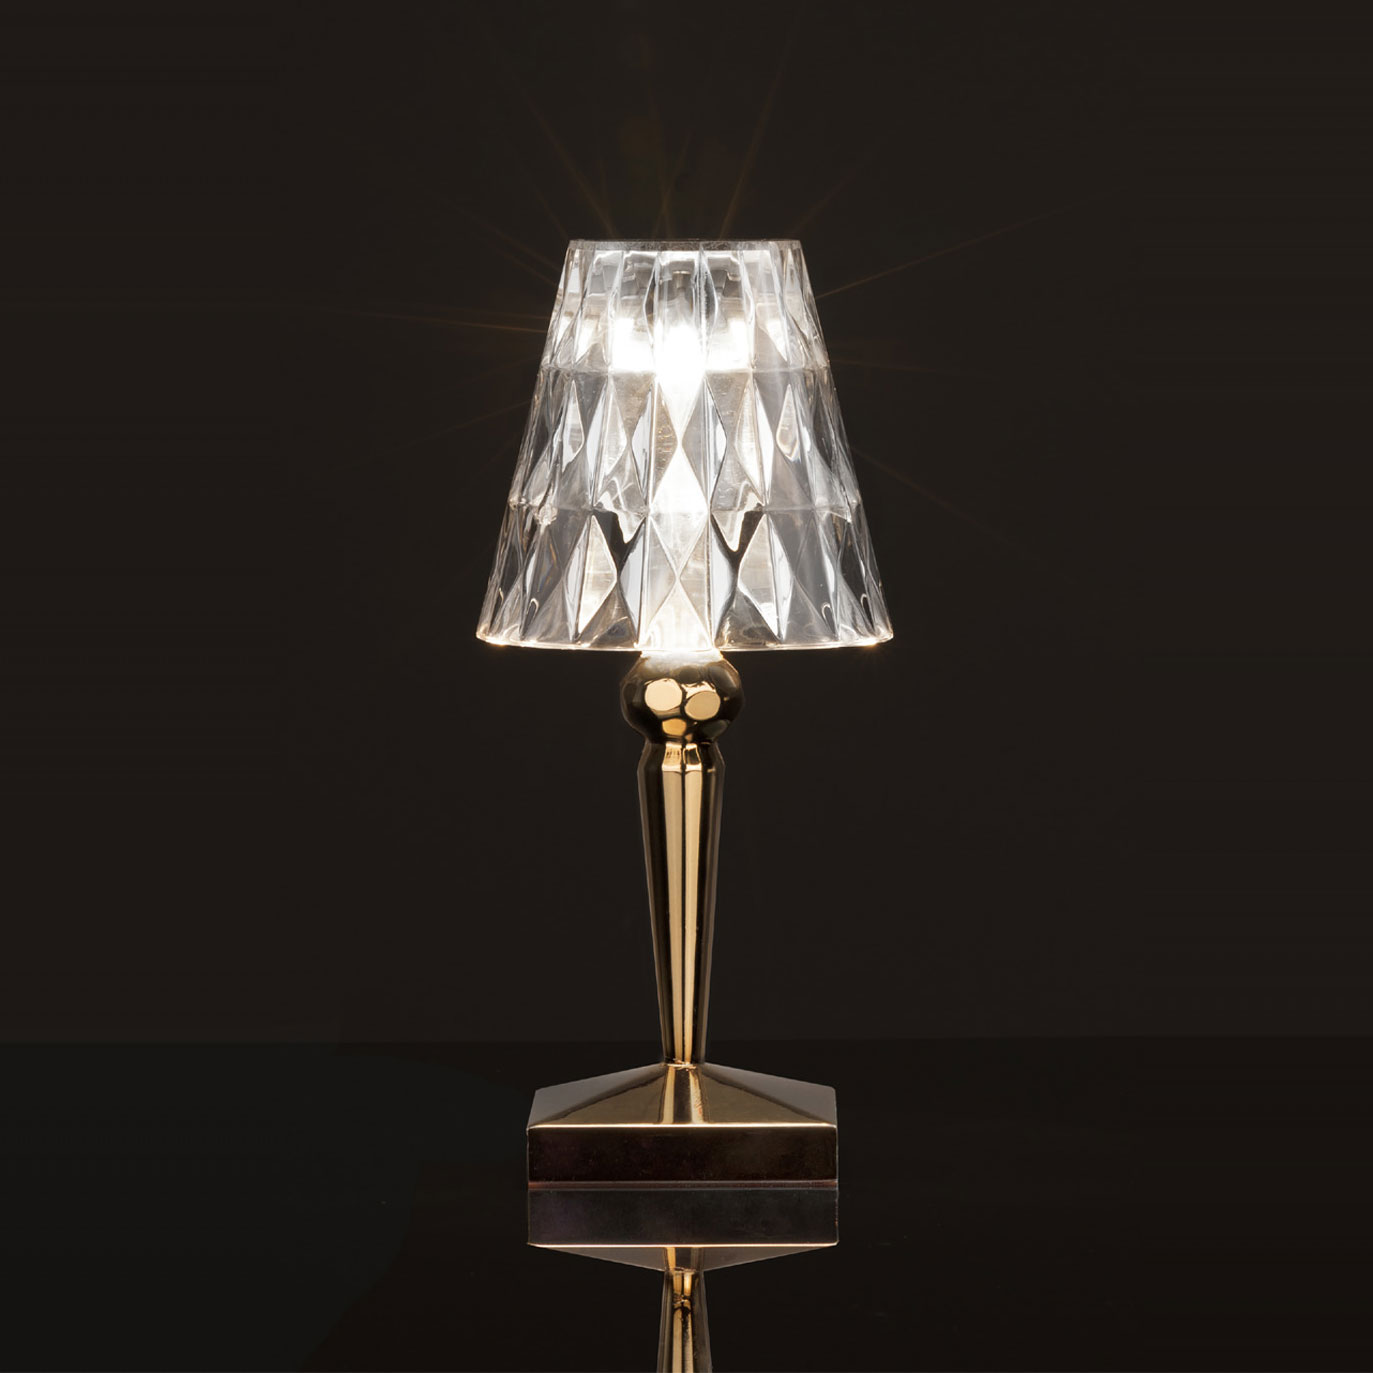 Kartell battery table lamp rechargeable by ferruccio laviani kartell battery table lamp metallic rechargeable by ferruccio laviani geotapseo Gallery